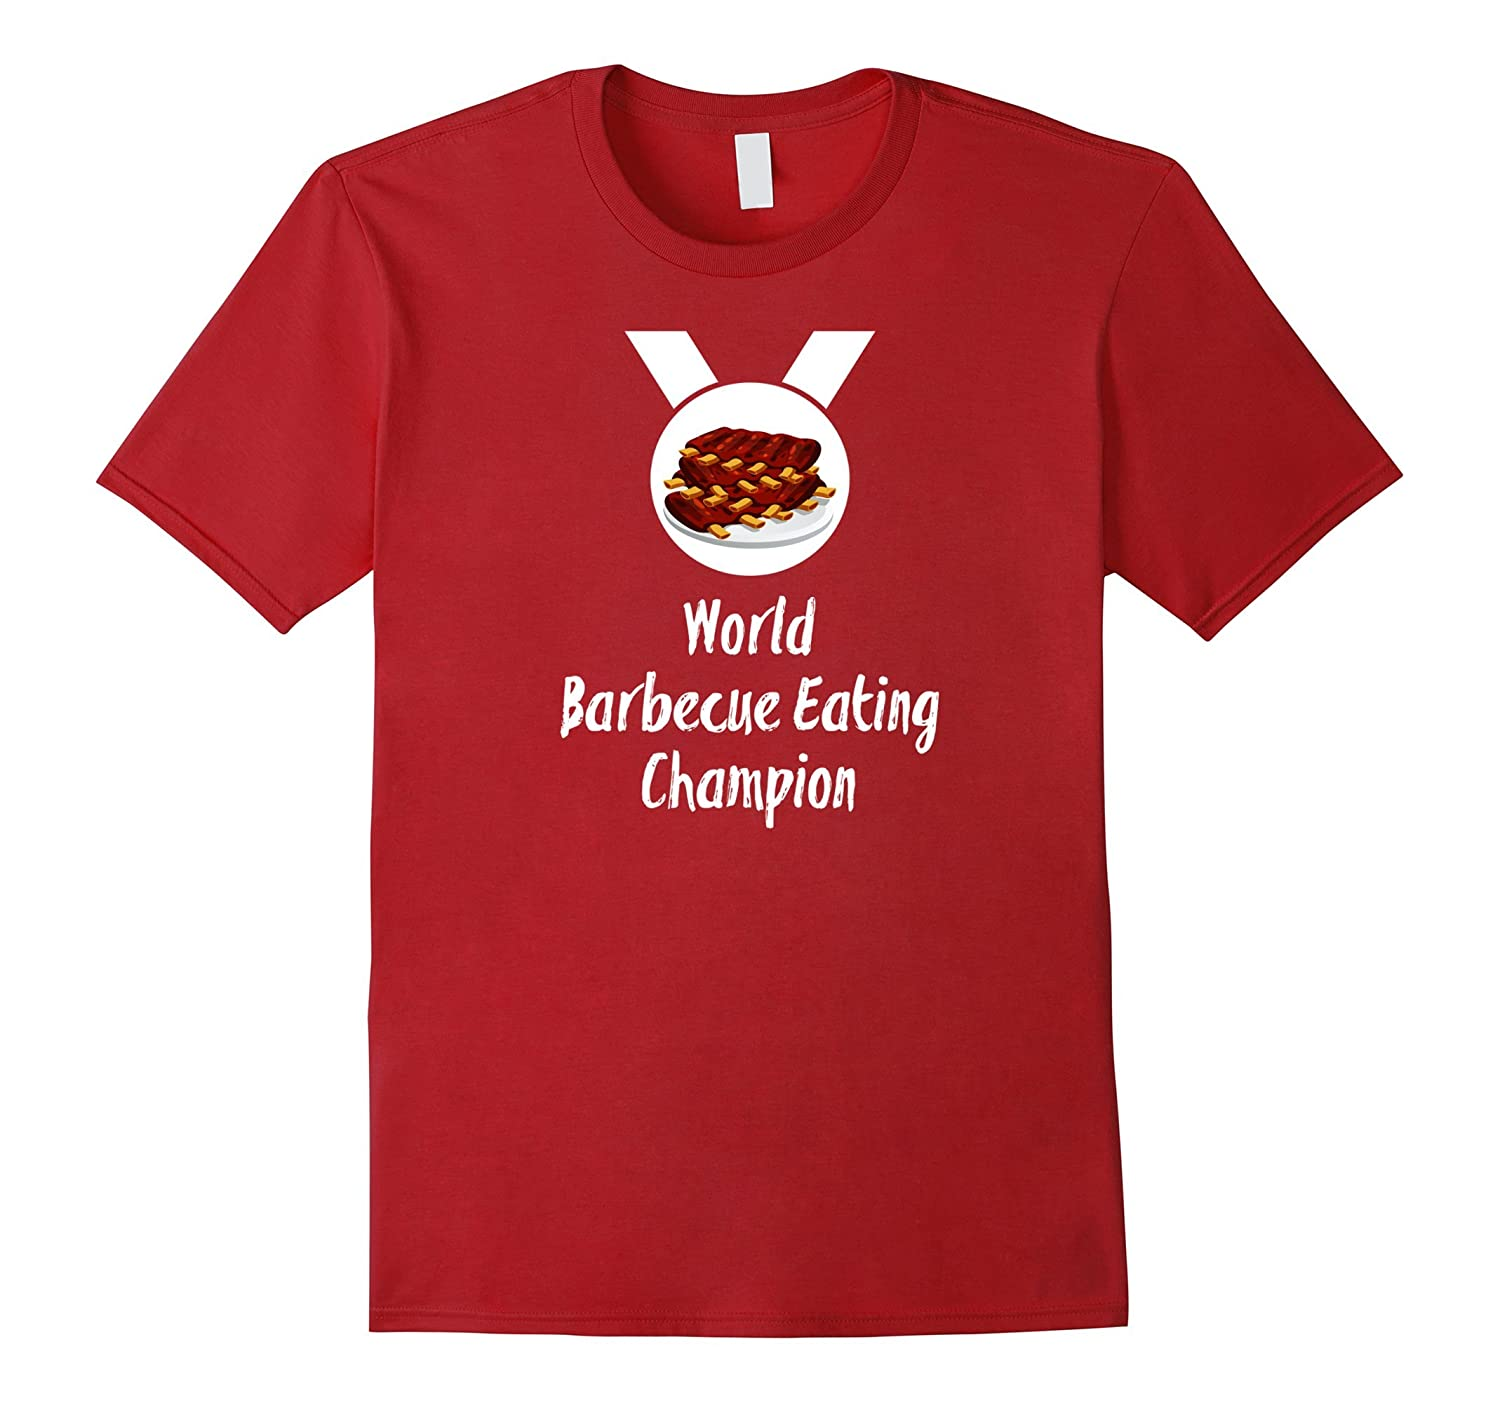 Fun World BBQ Eating Champion T-shirt For Food Lovers Wht-FL